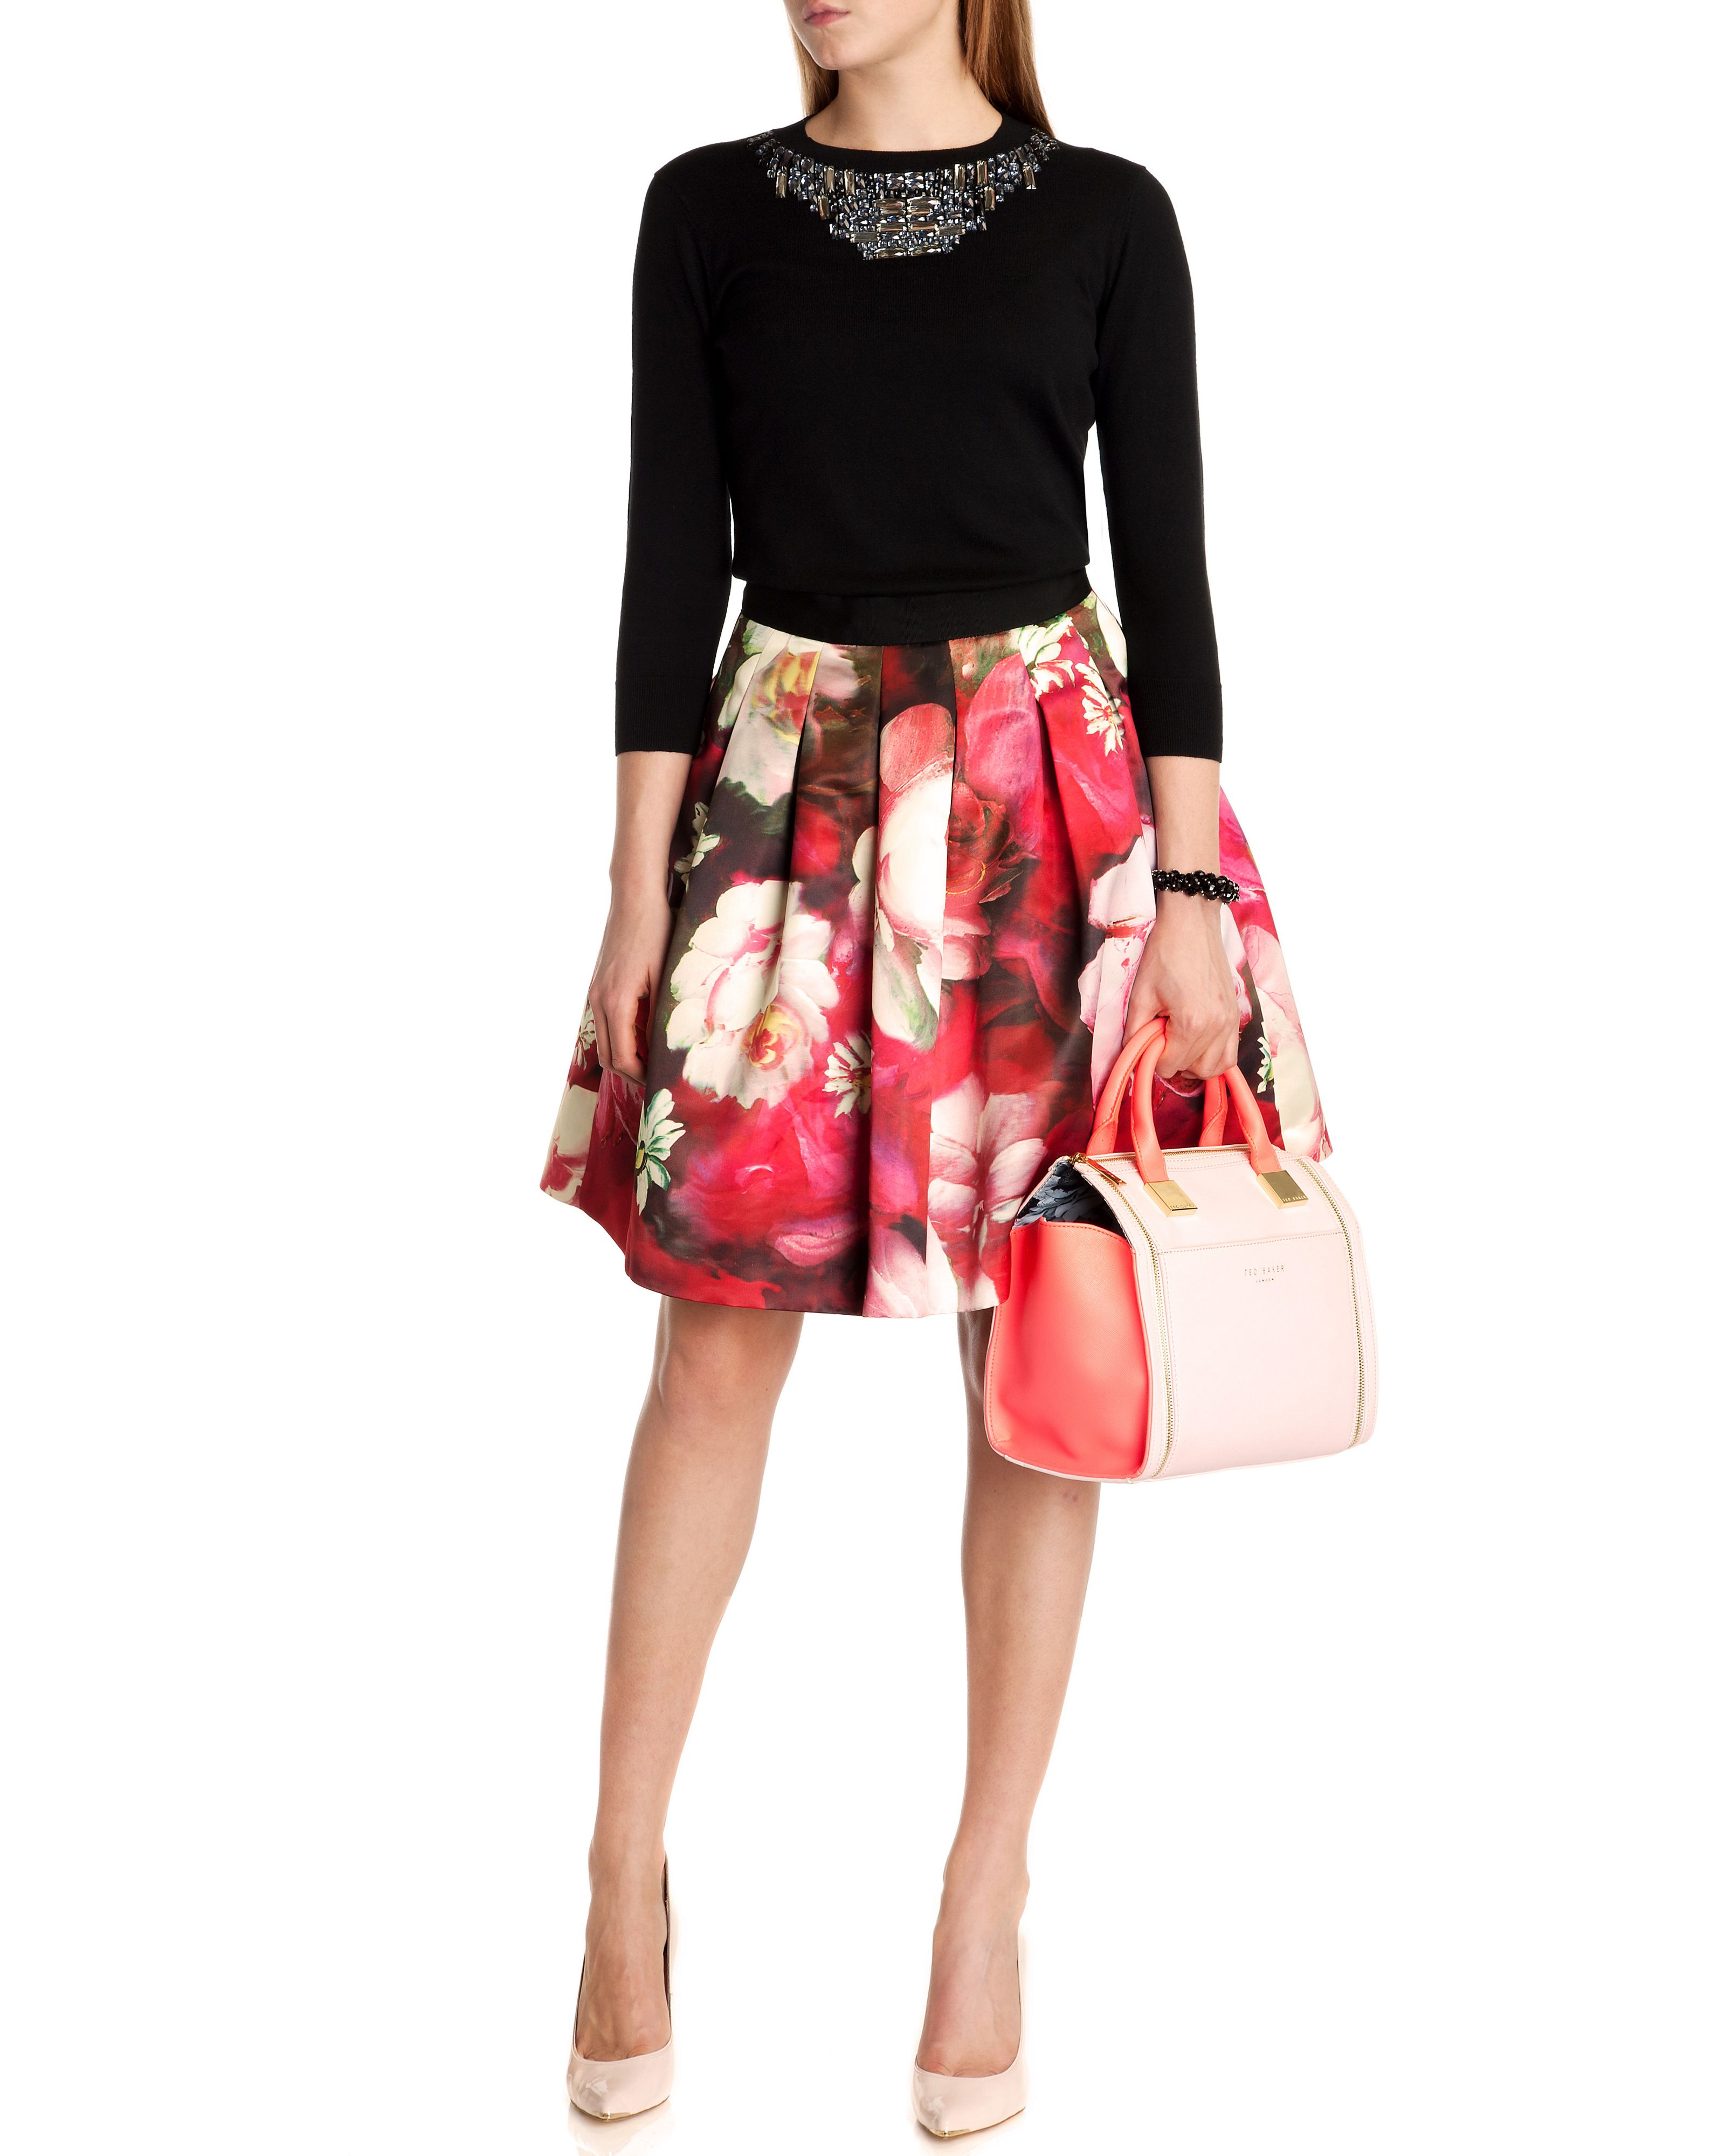 Monny rose on canvas printed skirt